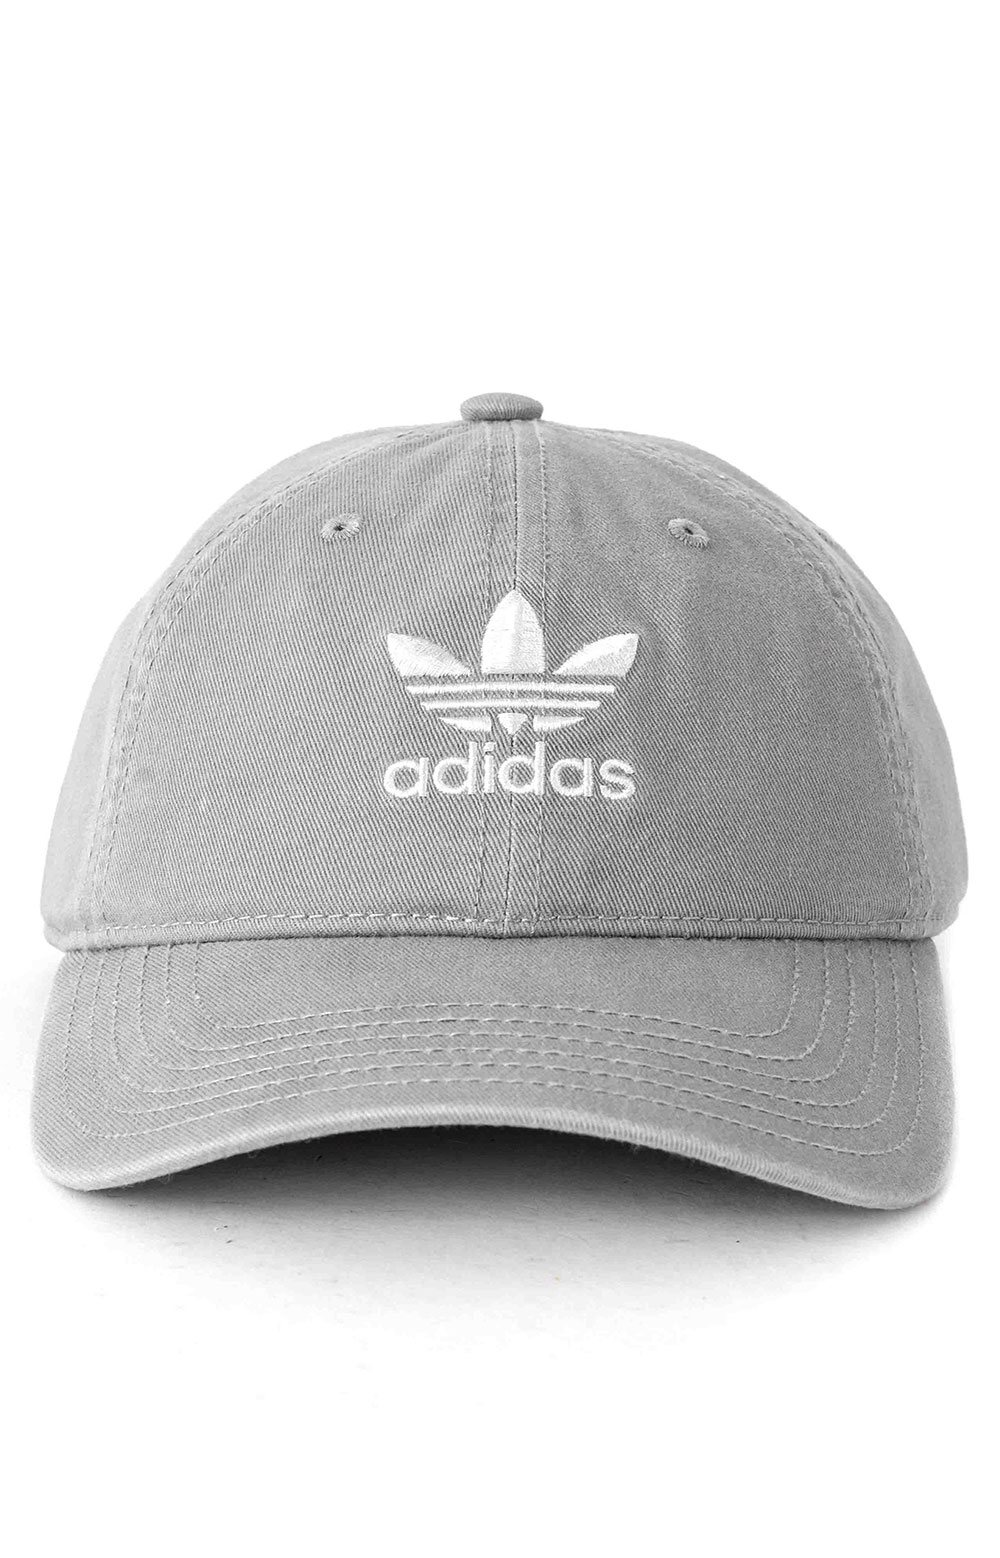 Originals Relaxed Strap-Back Hat - Dove Grey 2